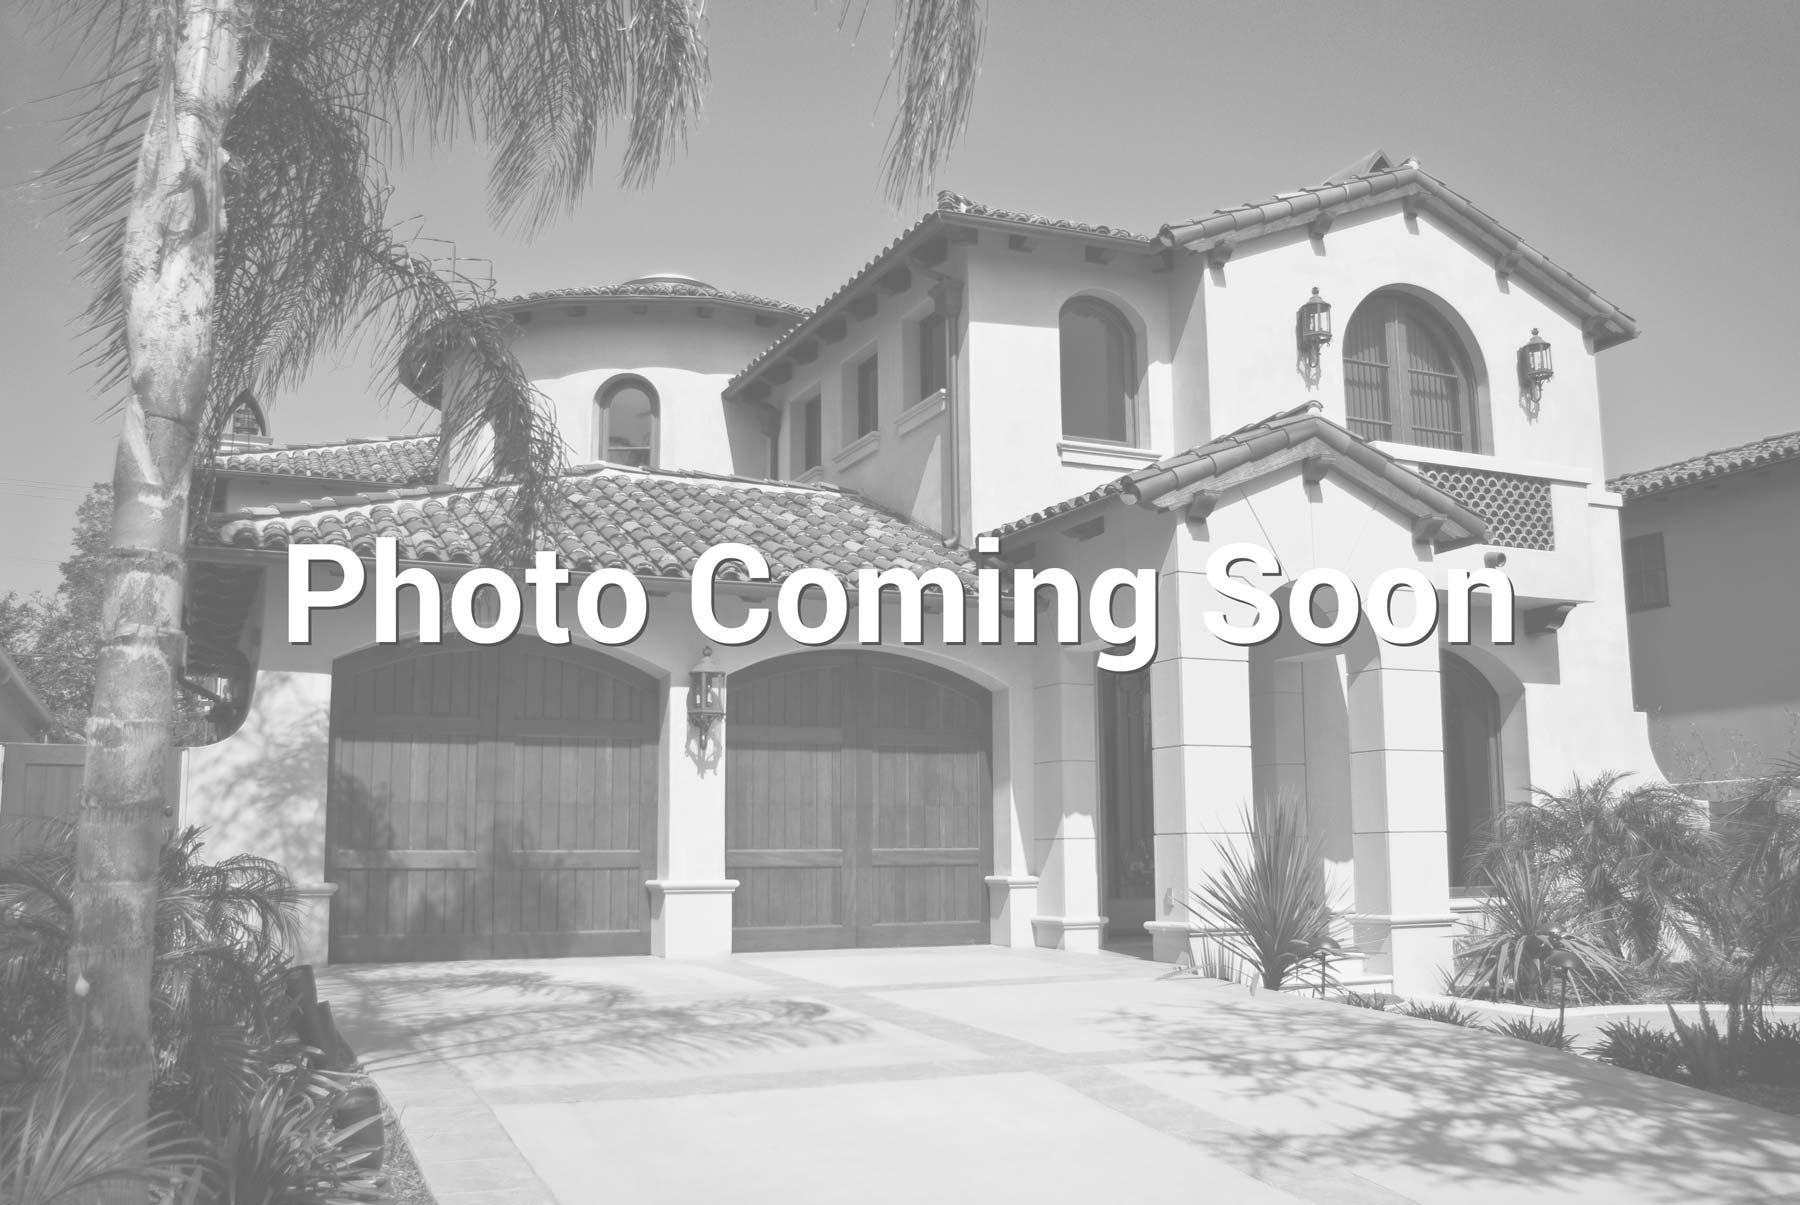 $1,225,000 - 4Br/4Ba - Home for Sale in Dc Ranch Parcel 1.11, Scottsdale